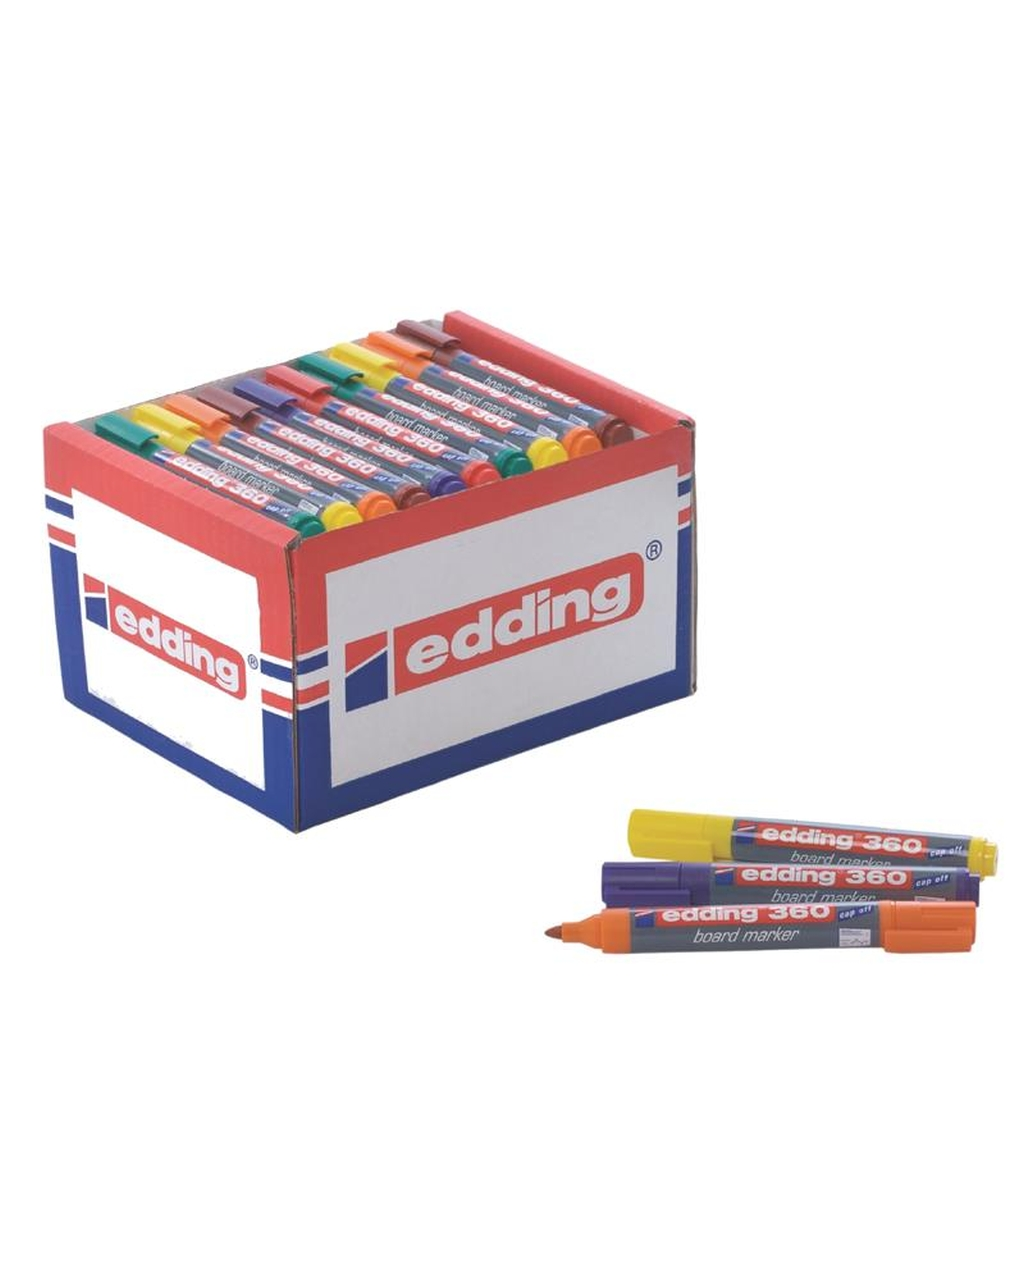 Edding 360 Whiteboard Marker Classpack -          Assorted Colours